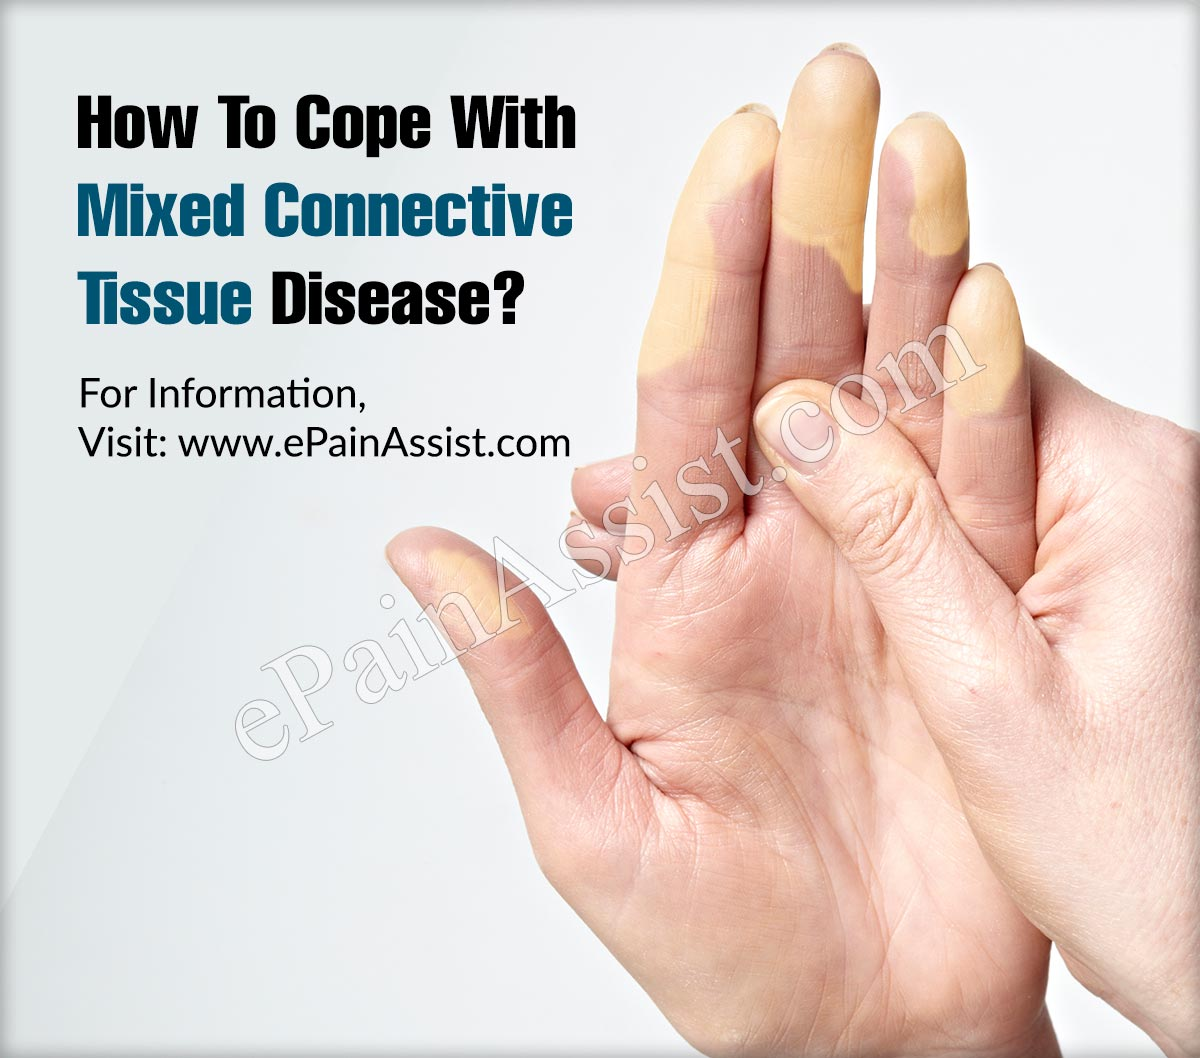 How To Cope With Mixed Connective Tissue Disease?